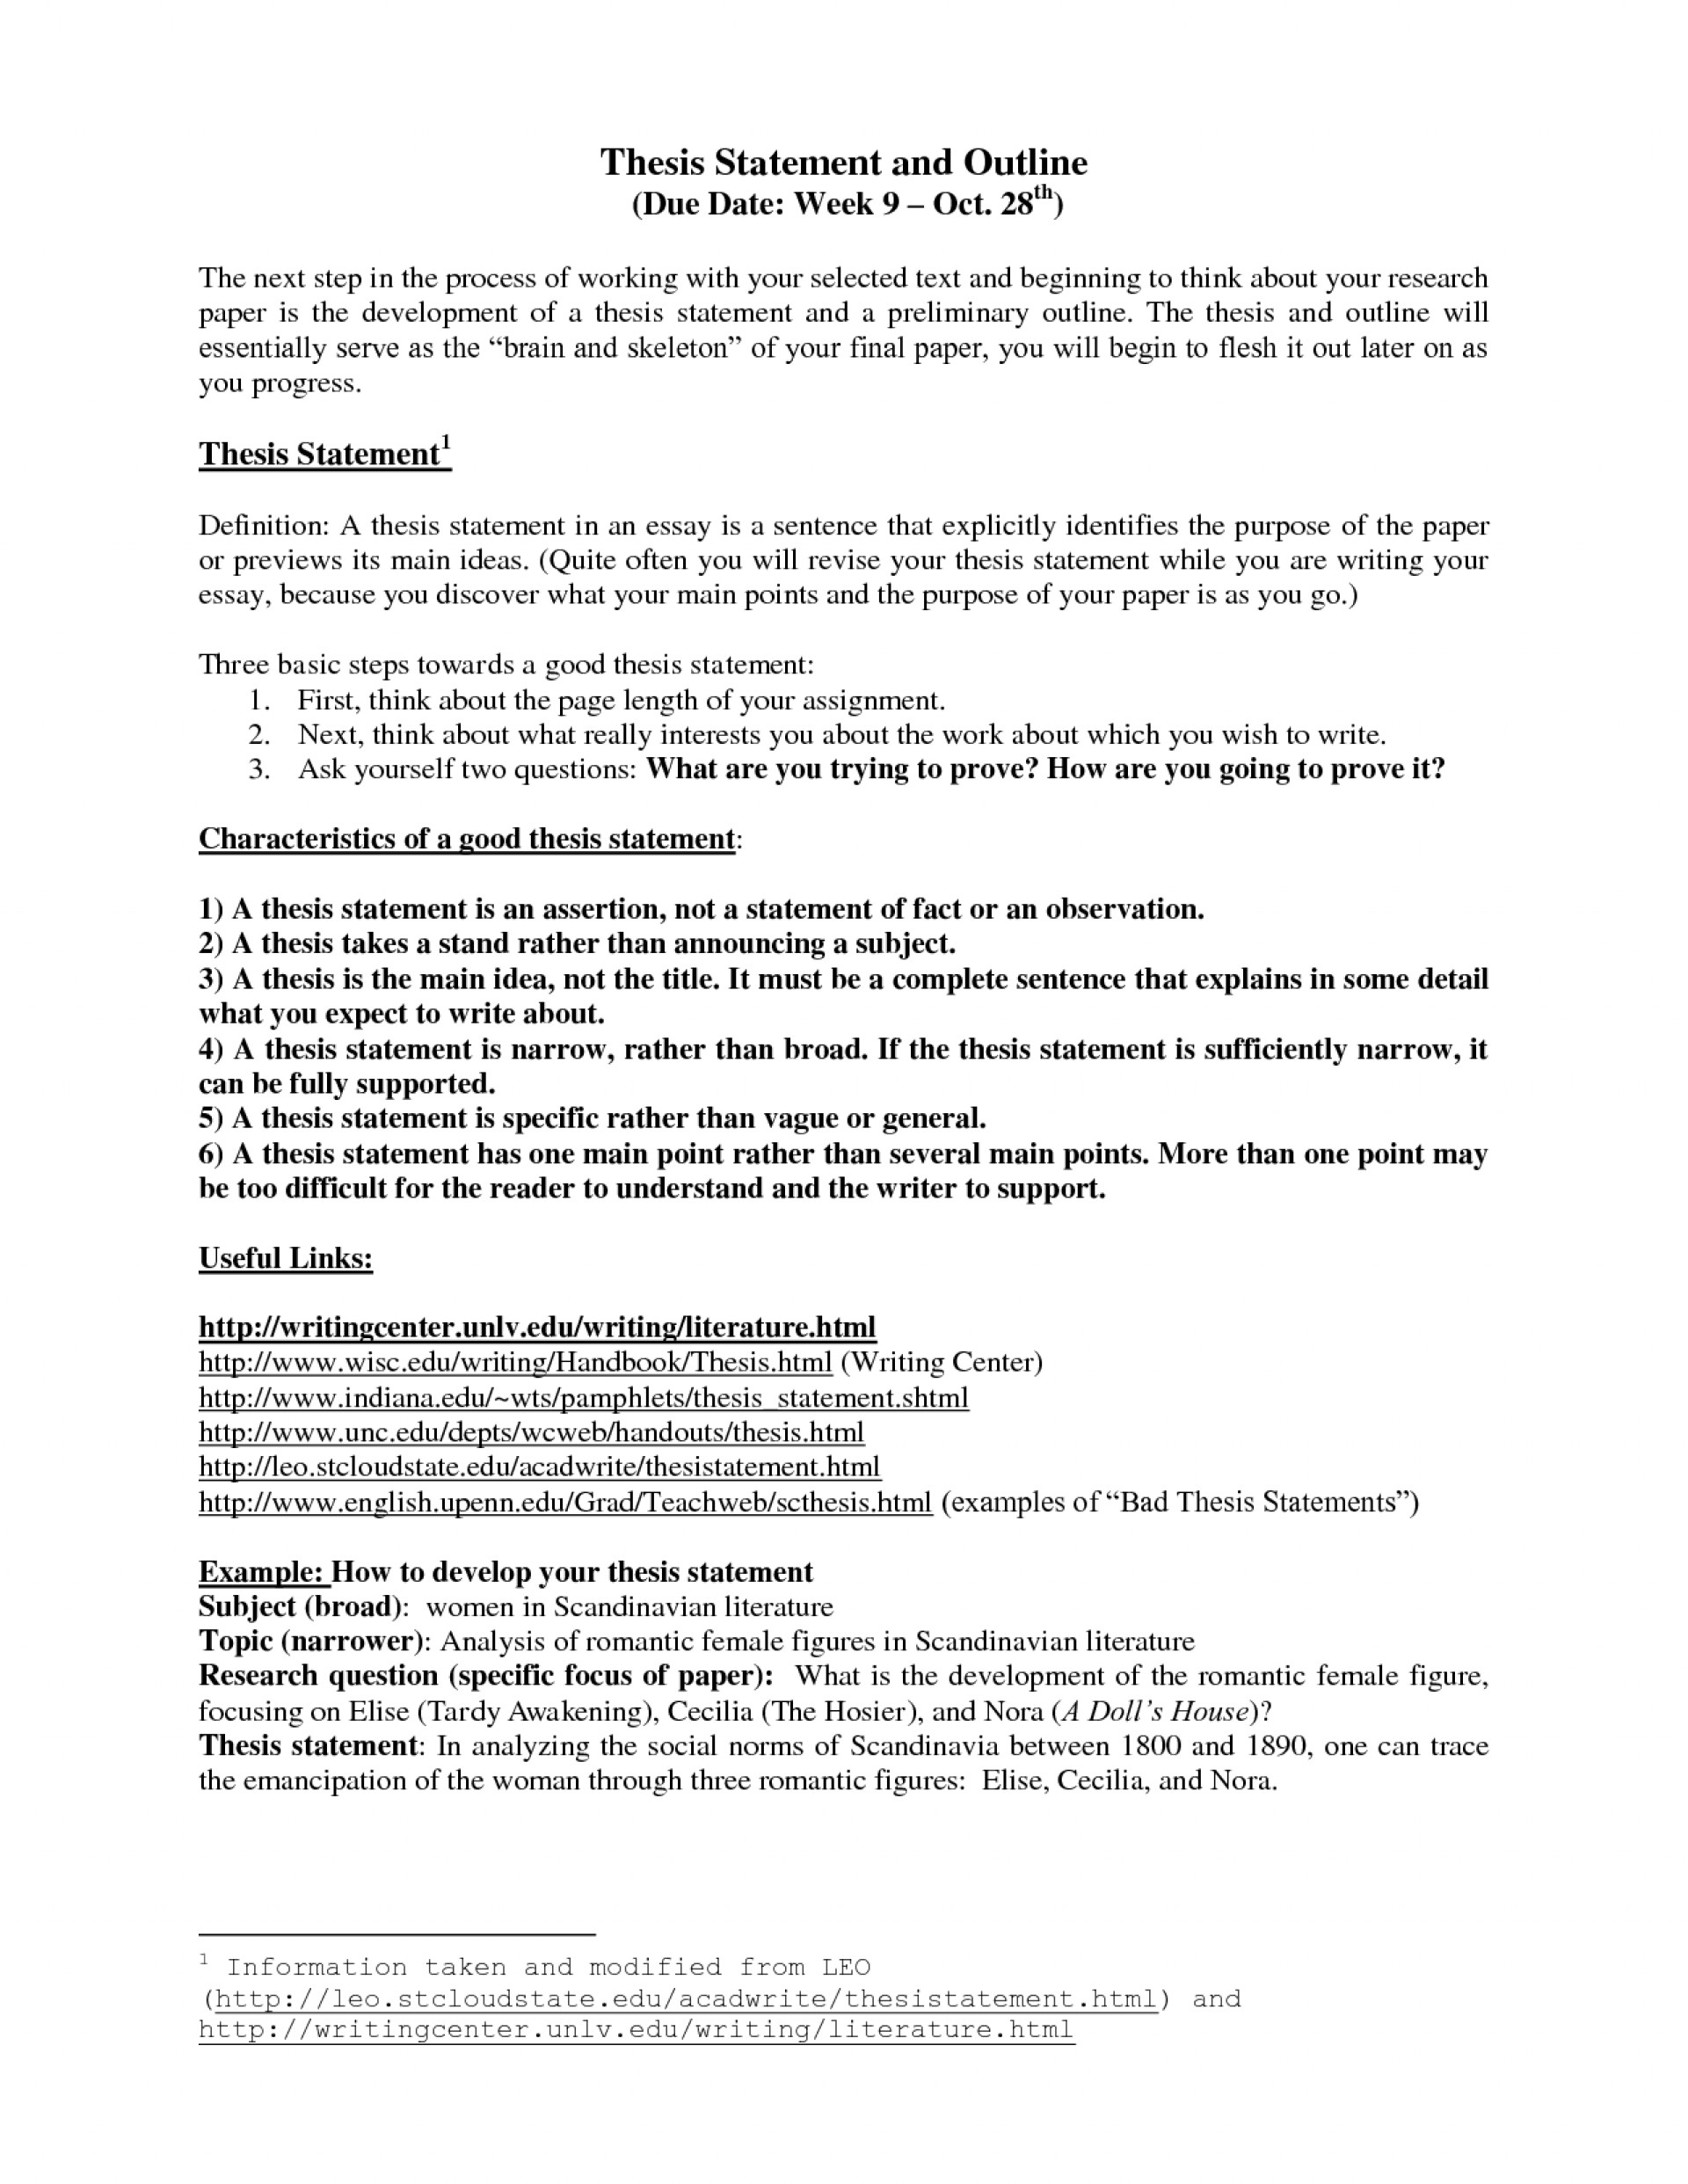 017 Essay Example Thesis Statement And Outline Template Wx8nmdezw5cu003d10245cu0026h5cu003d1024 Art Formidable Examples Conclusion School A2 1920